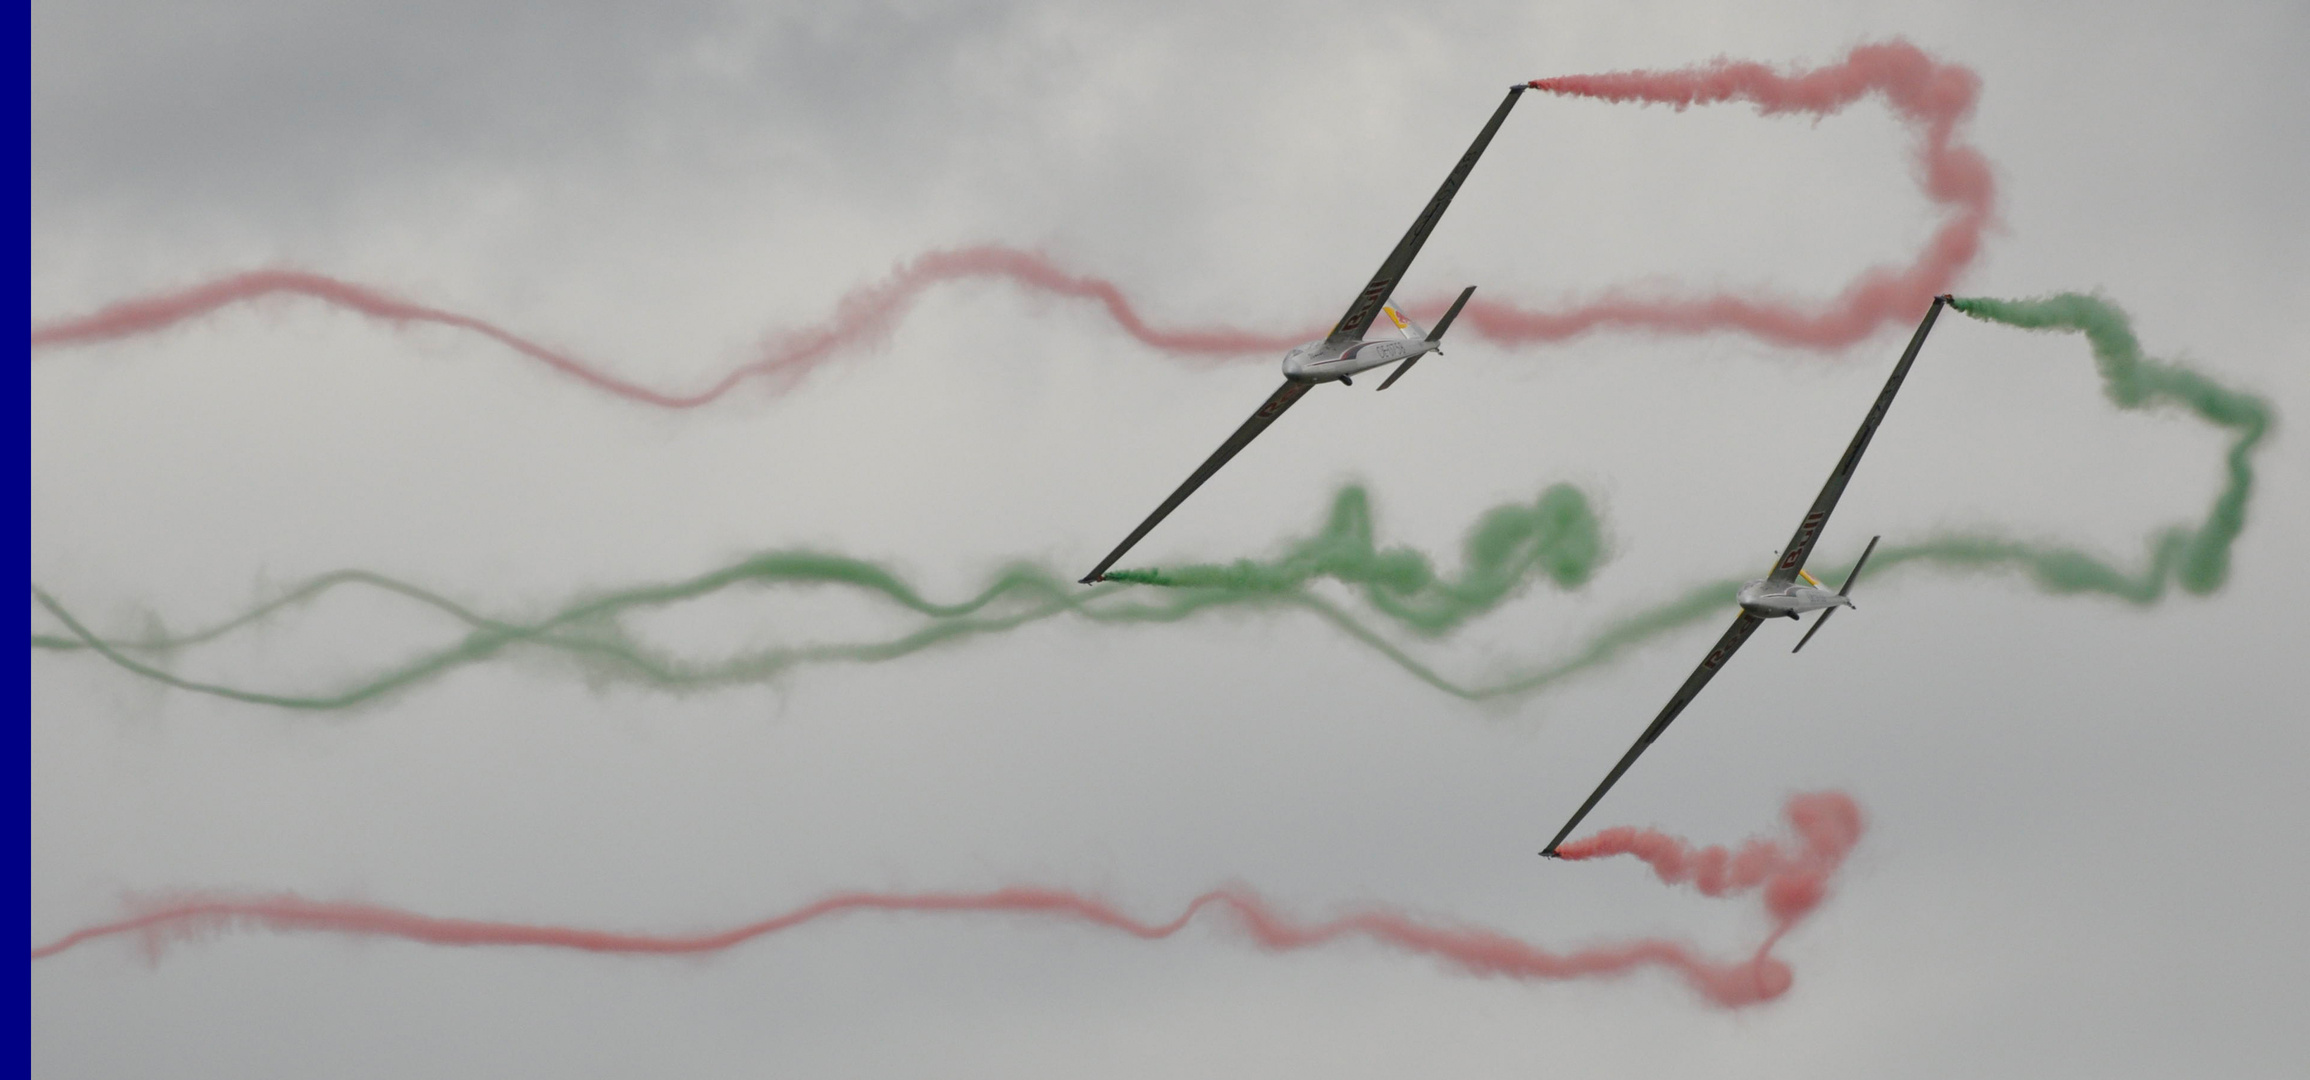 Die leisesten der Airpower 2011